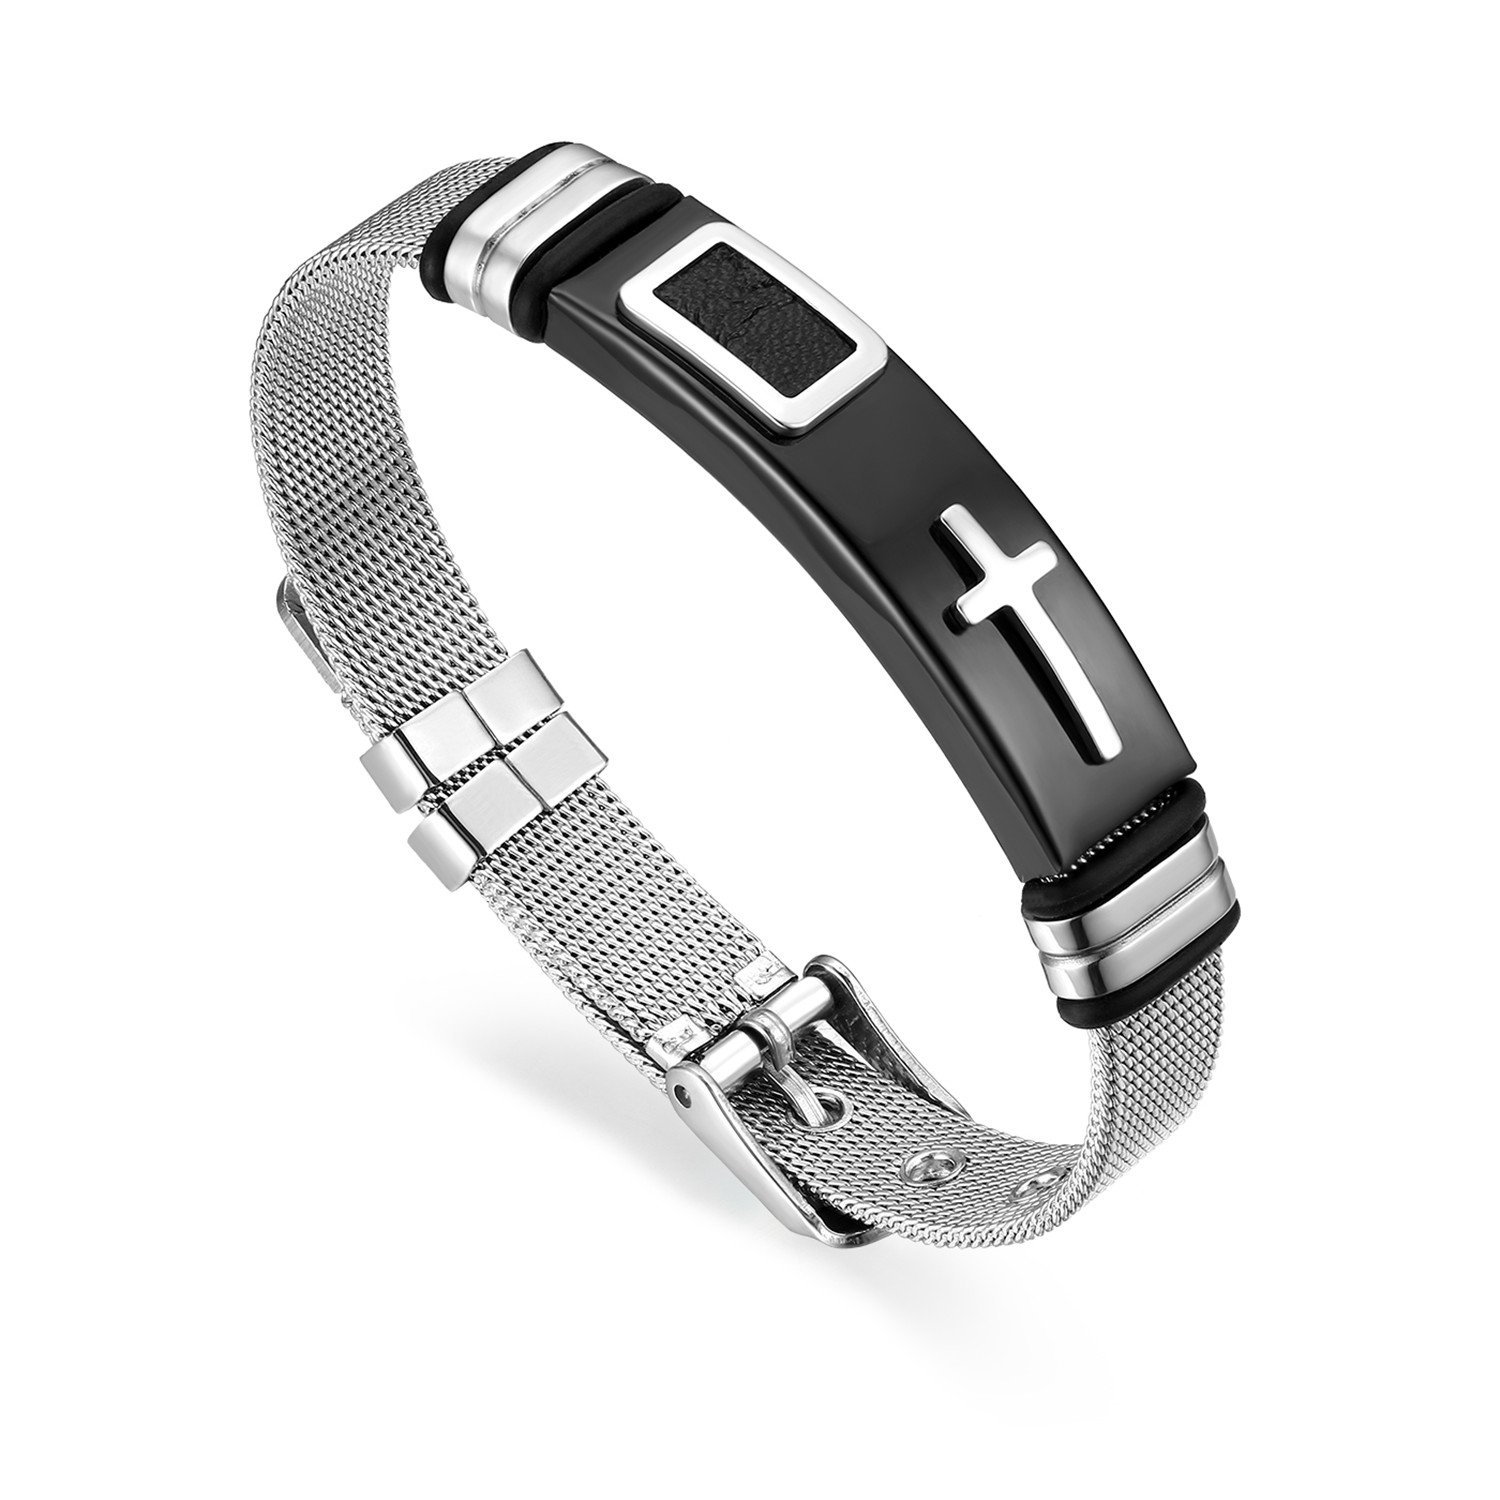 Cupimatch Men Stainless Steel Cross Bracelet Bangle, The Honor of Knight Mesh Wristband Chain 21CM Adjustable CU-MI-101-UK